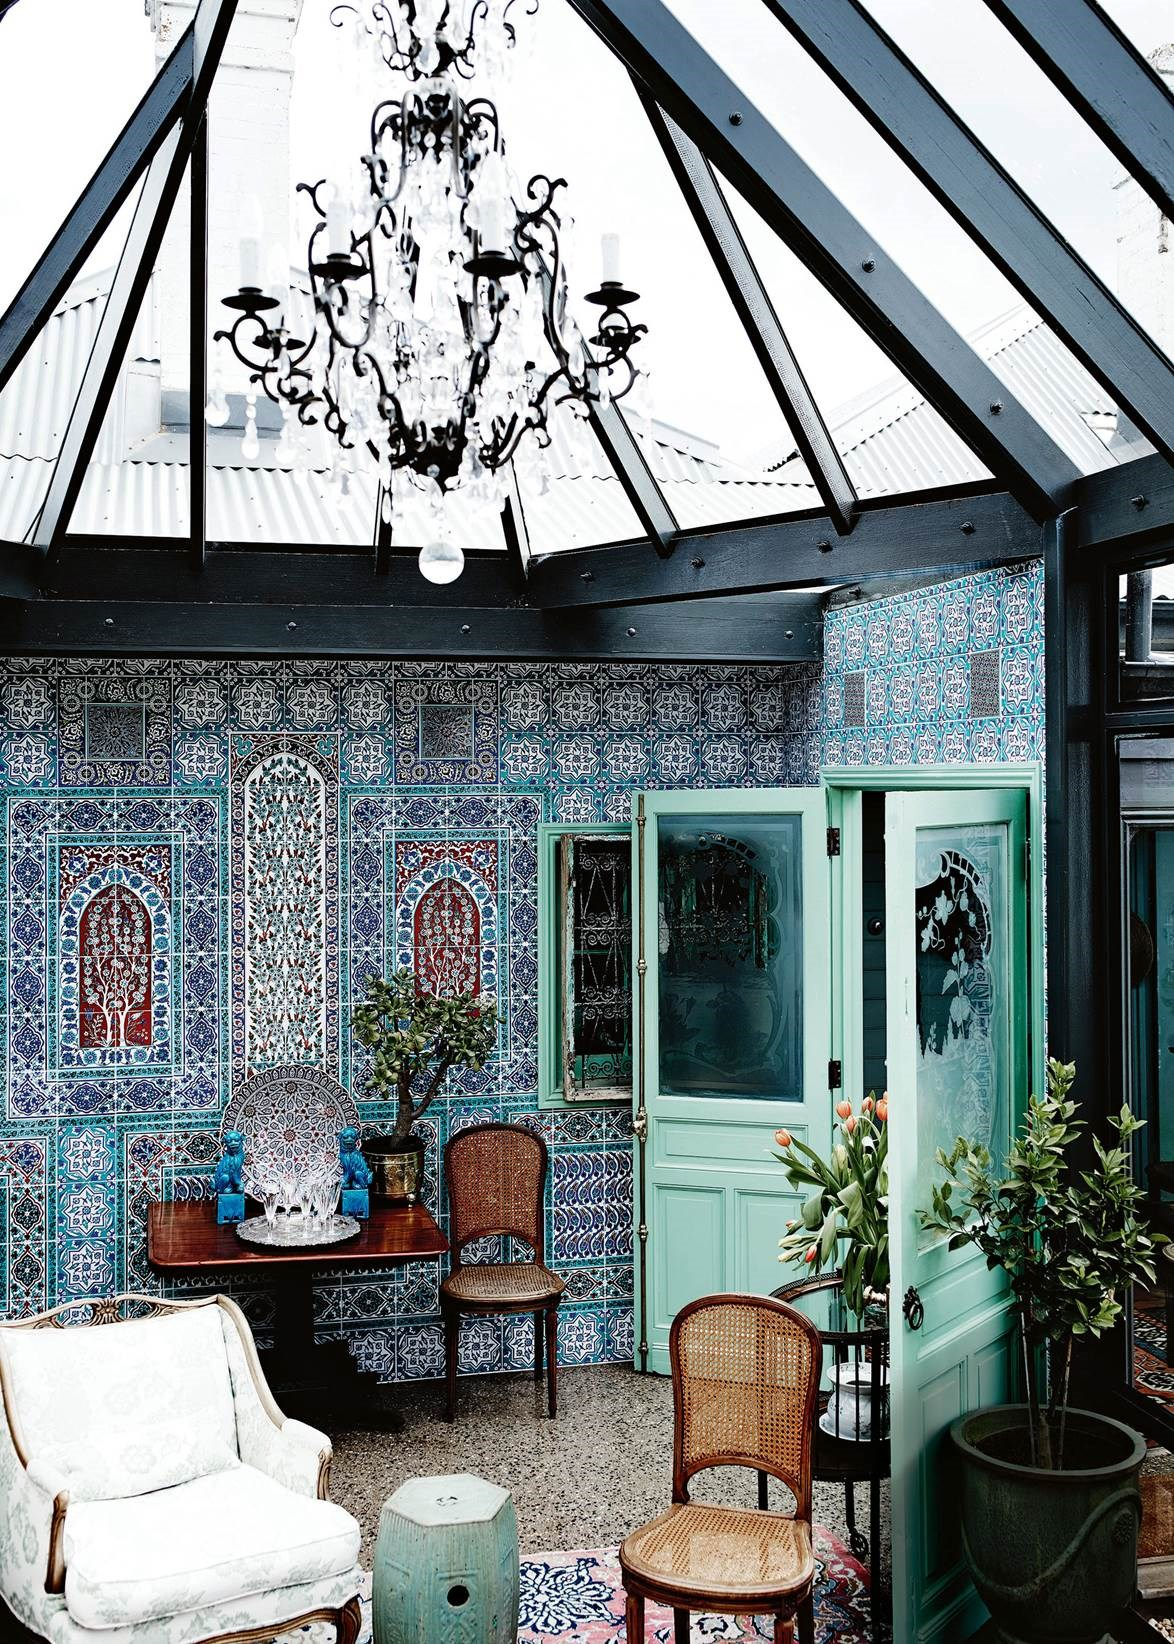 "A priest who moonlights as an interior designer turned an old cottage into a beautiful home complete with a conservatory. ""The building of the conservatory was a response to the beautiful garden,"" owner Jeff says, adding that the work scheduled to take four months blew out to two years. ""It has 26 opening windows… A bottomless pit of money went into this room but I'm thrilled with it — it's the gin and tonic room!"""